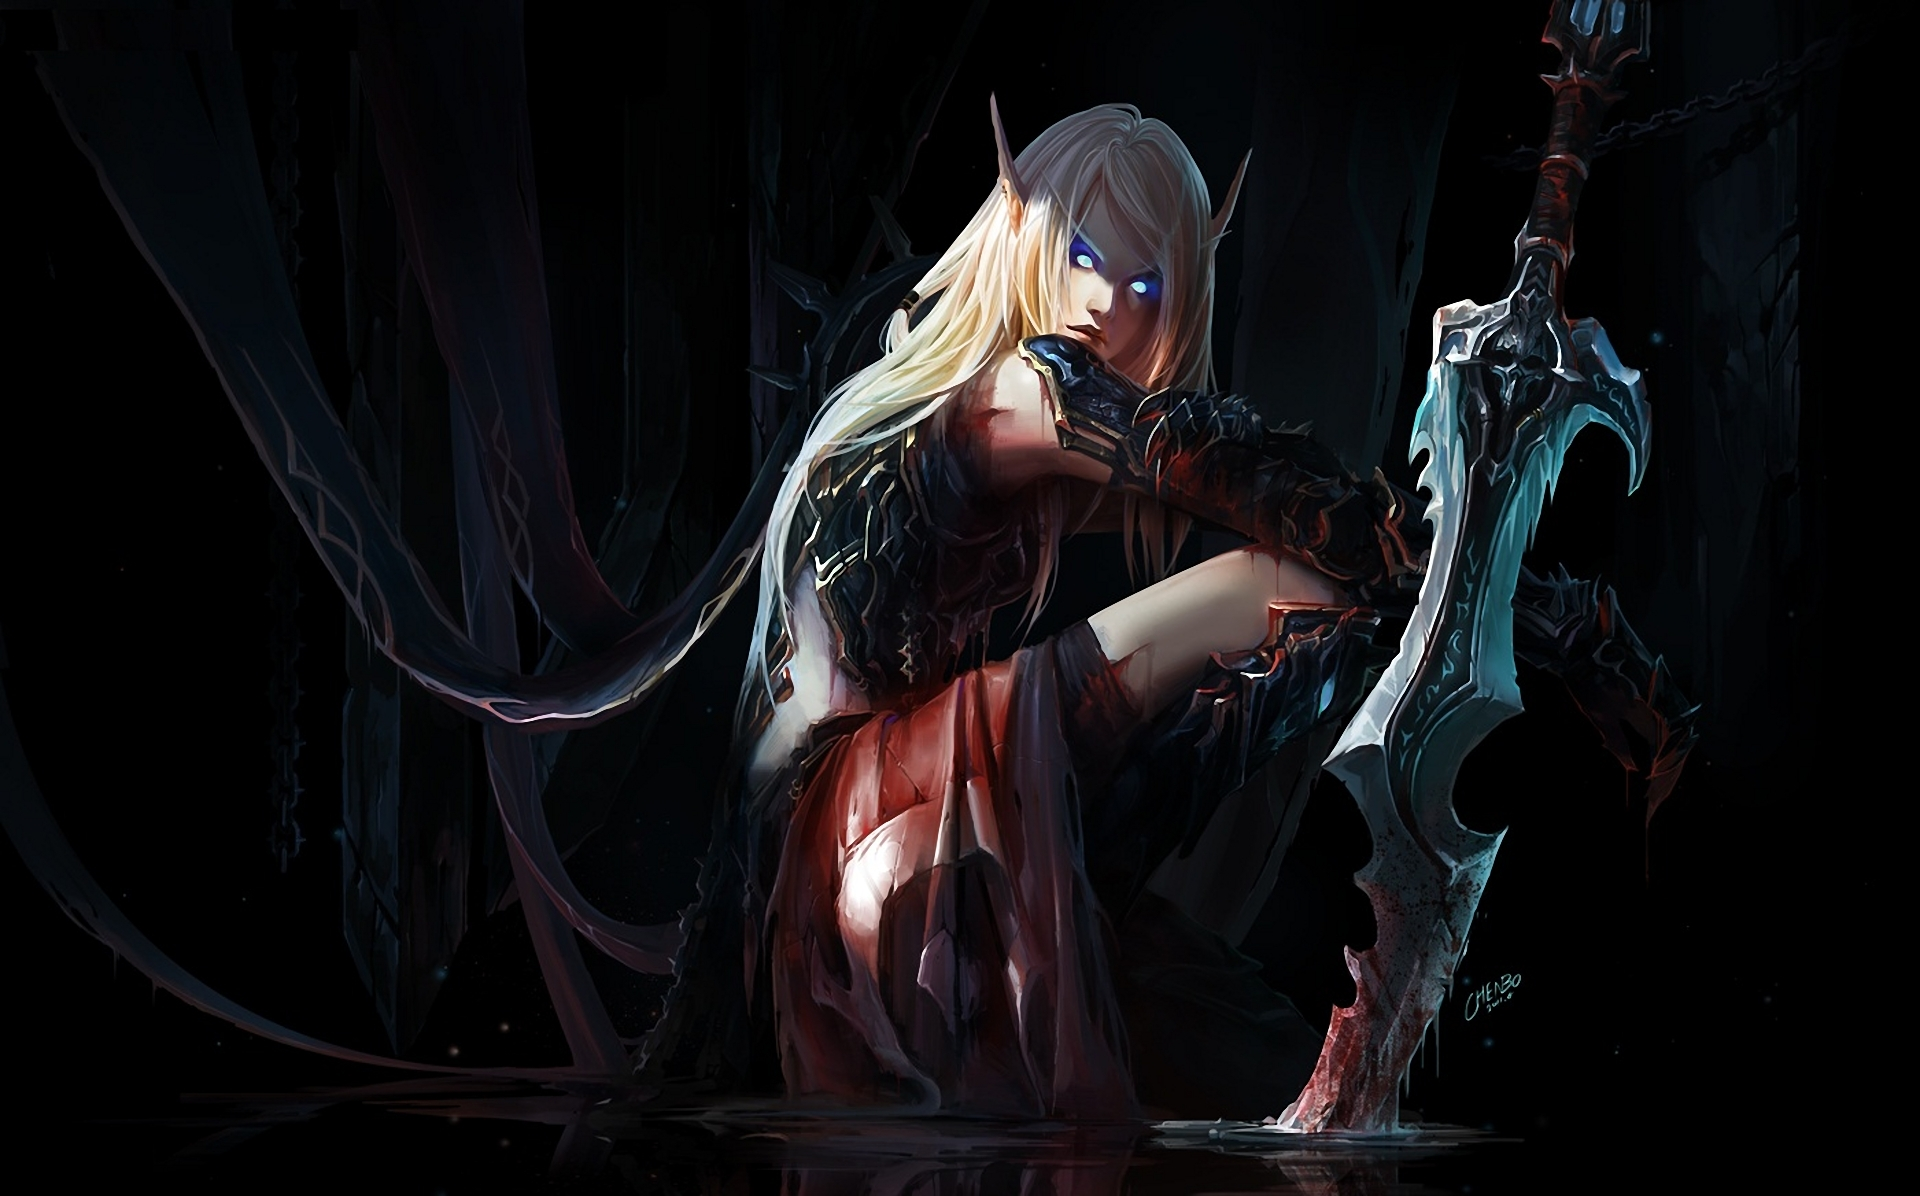 Bloodelf animated exposed galleries